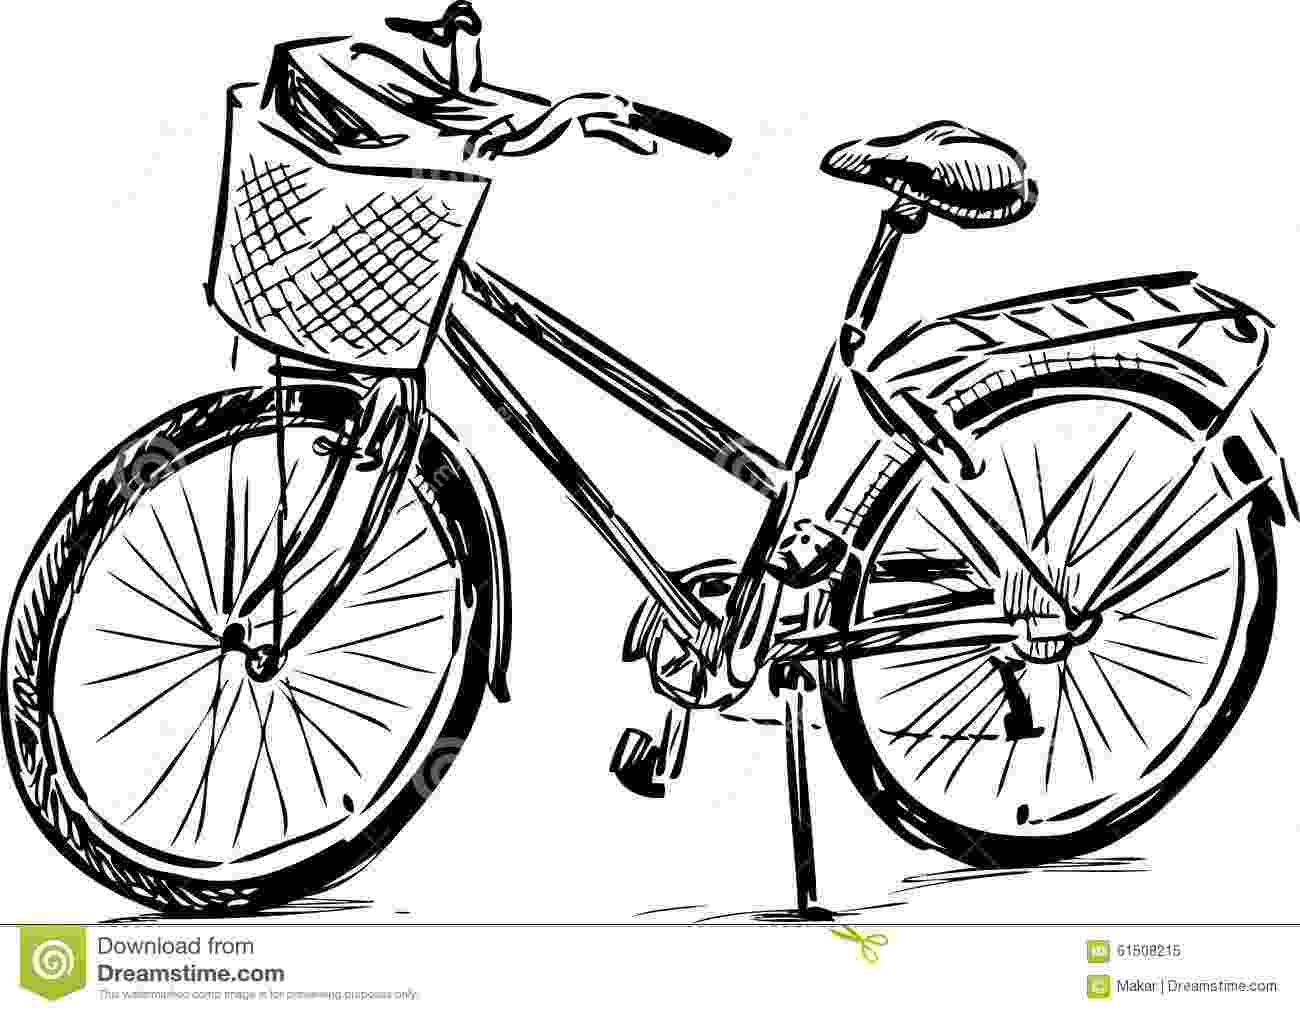 cycle sketch sketch of a bike stock vector illustration of pedal cycle sketch